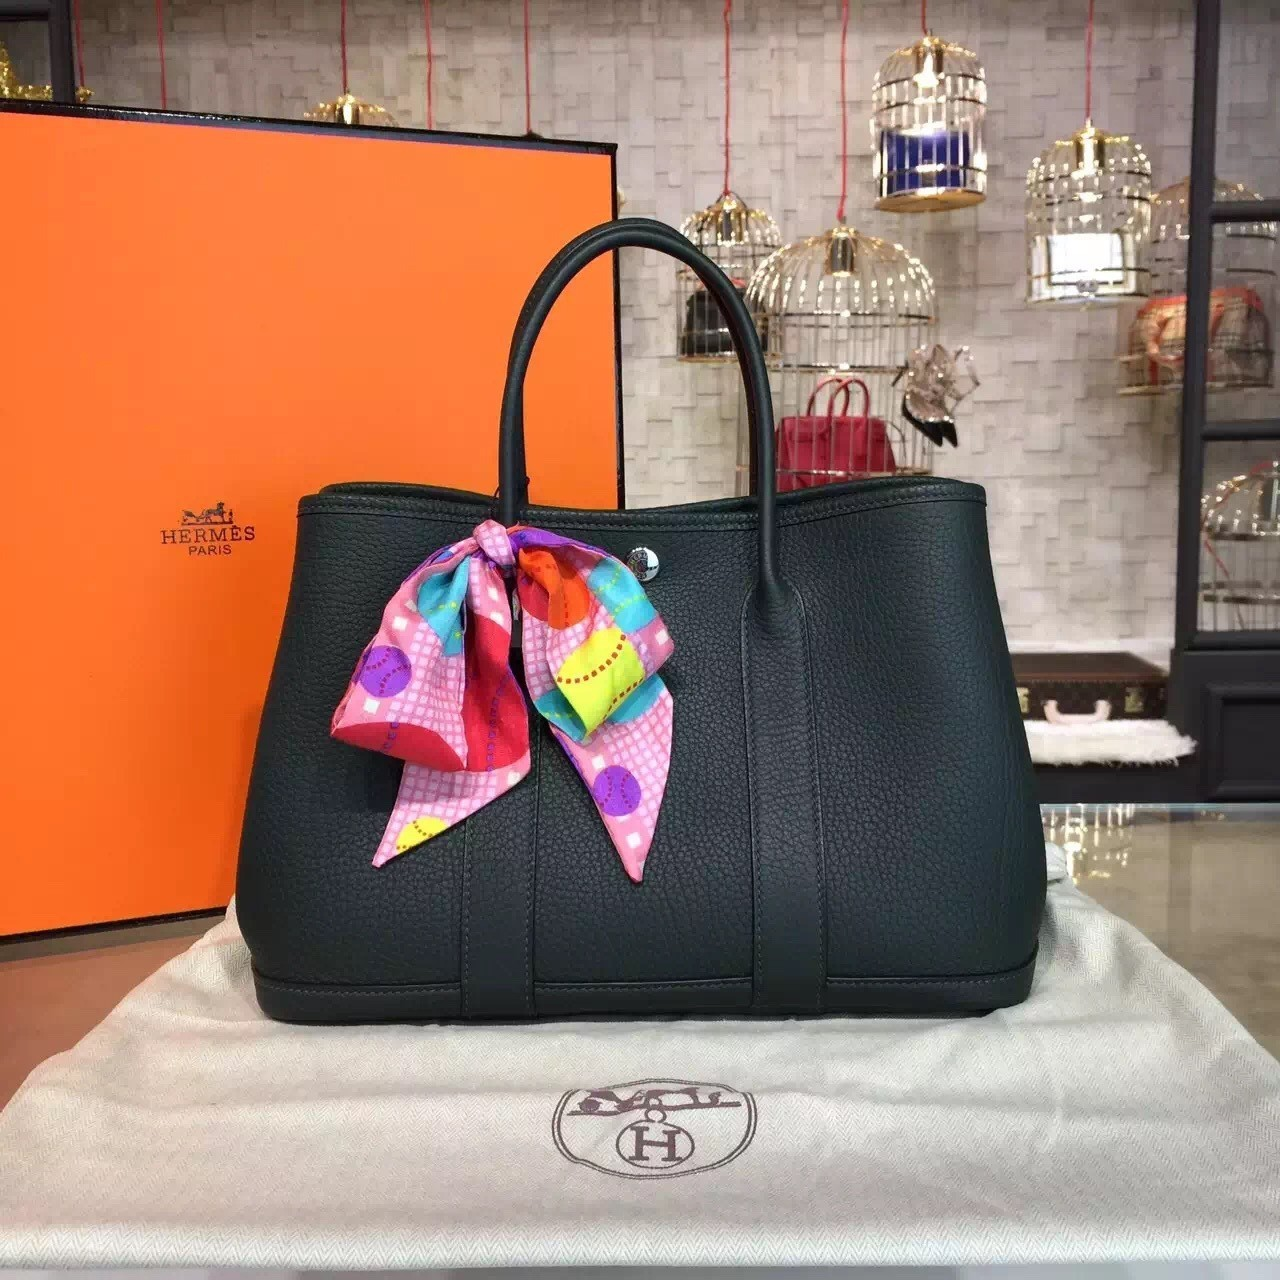 5bc1820c9977 ... Hermes Garden Party 30cm Togo Calfskin Leather Palladium Hardware High  Quality